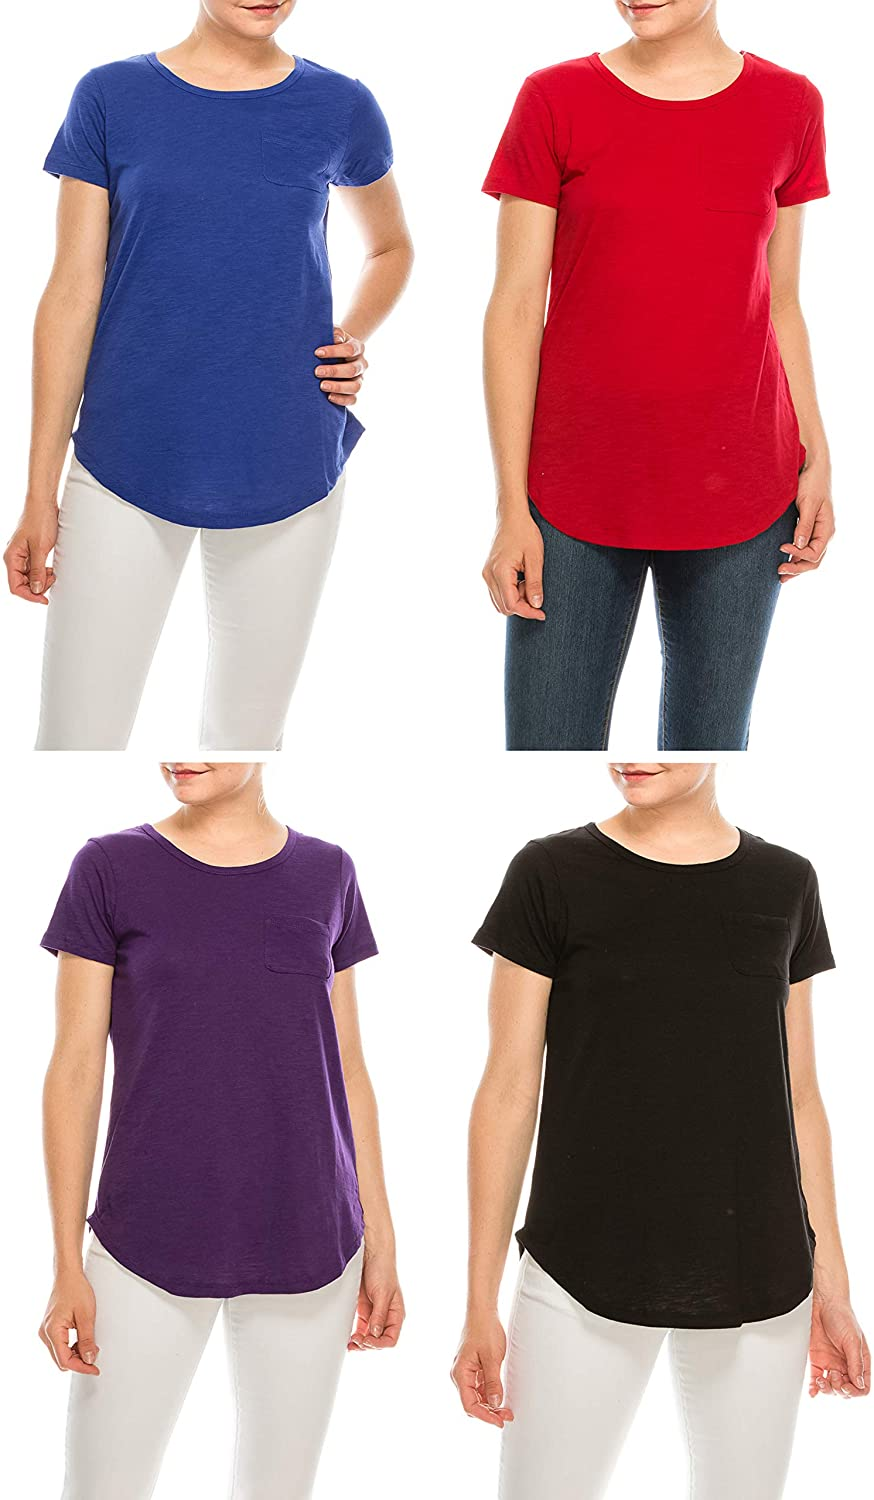 Urban Diction Pack of 4 Women's Loose Essential Solid Colors Basic Scoop Neck Tees